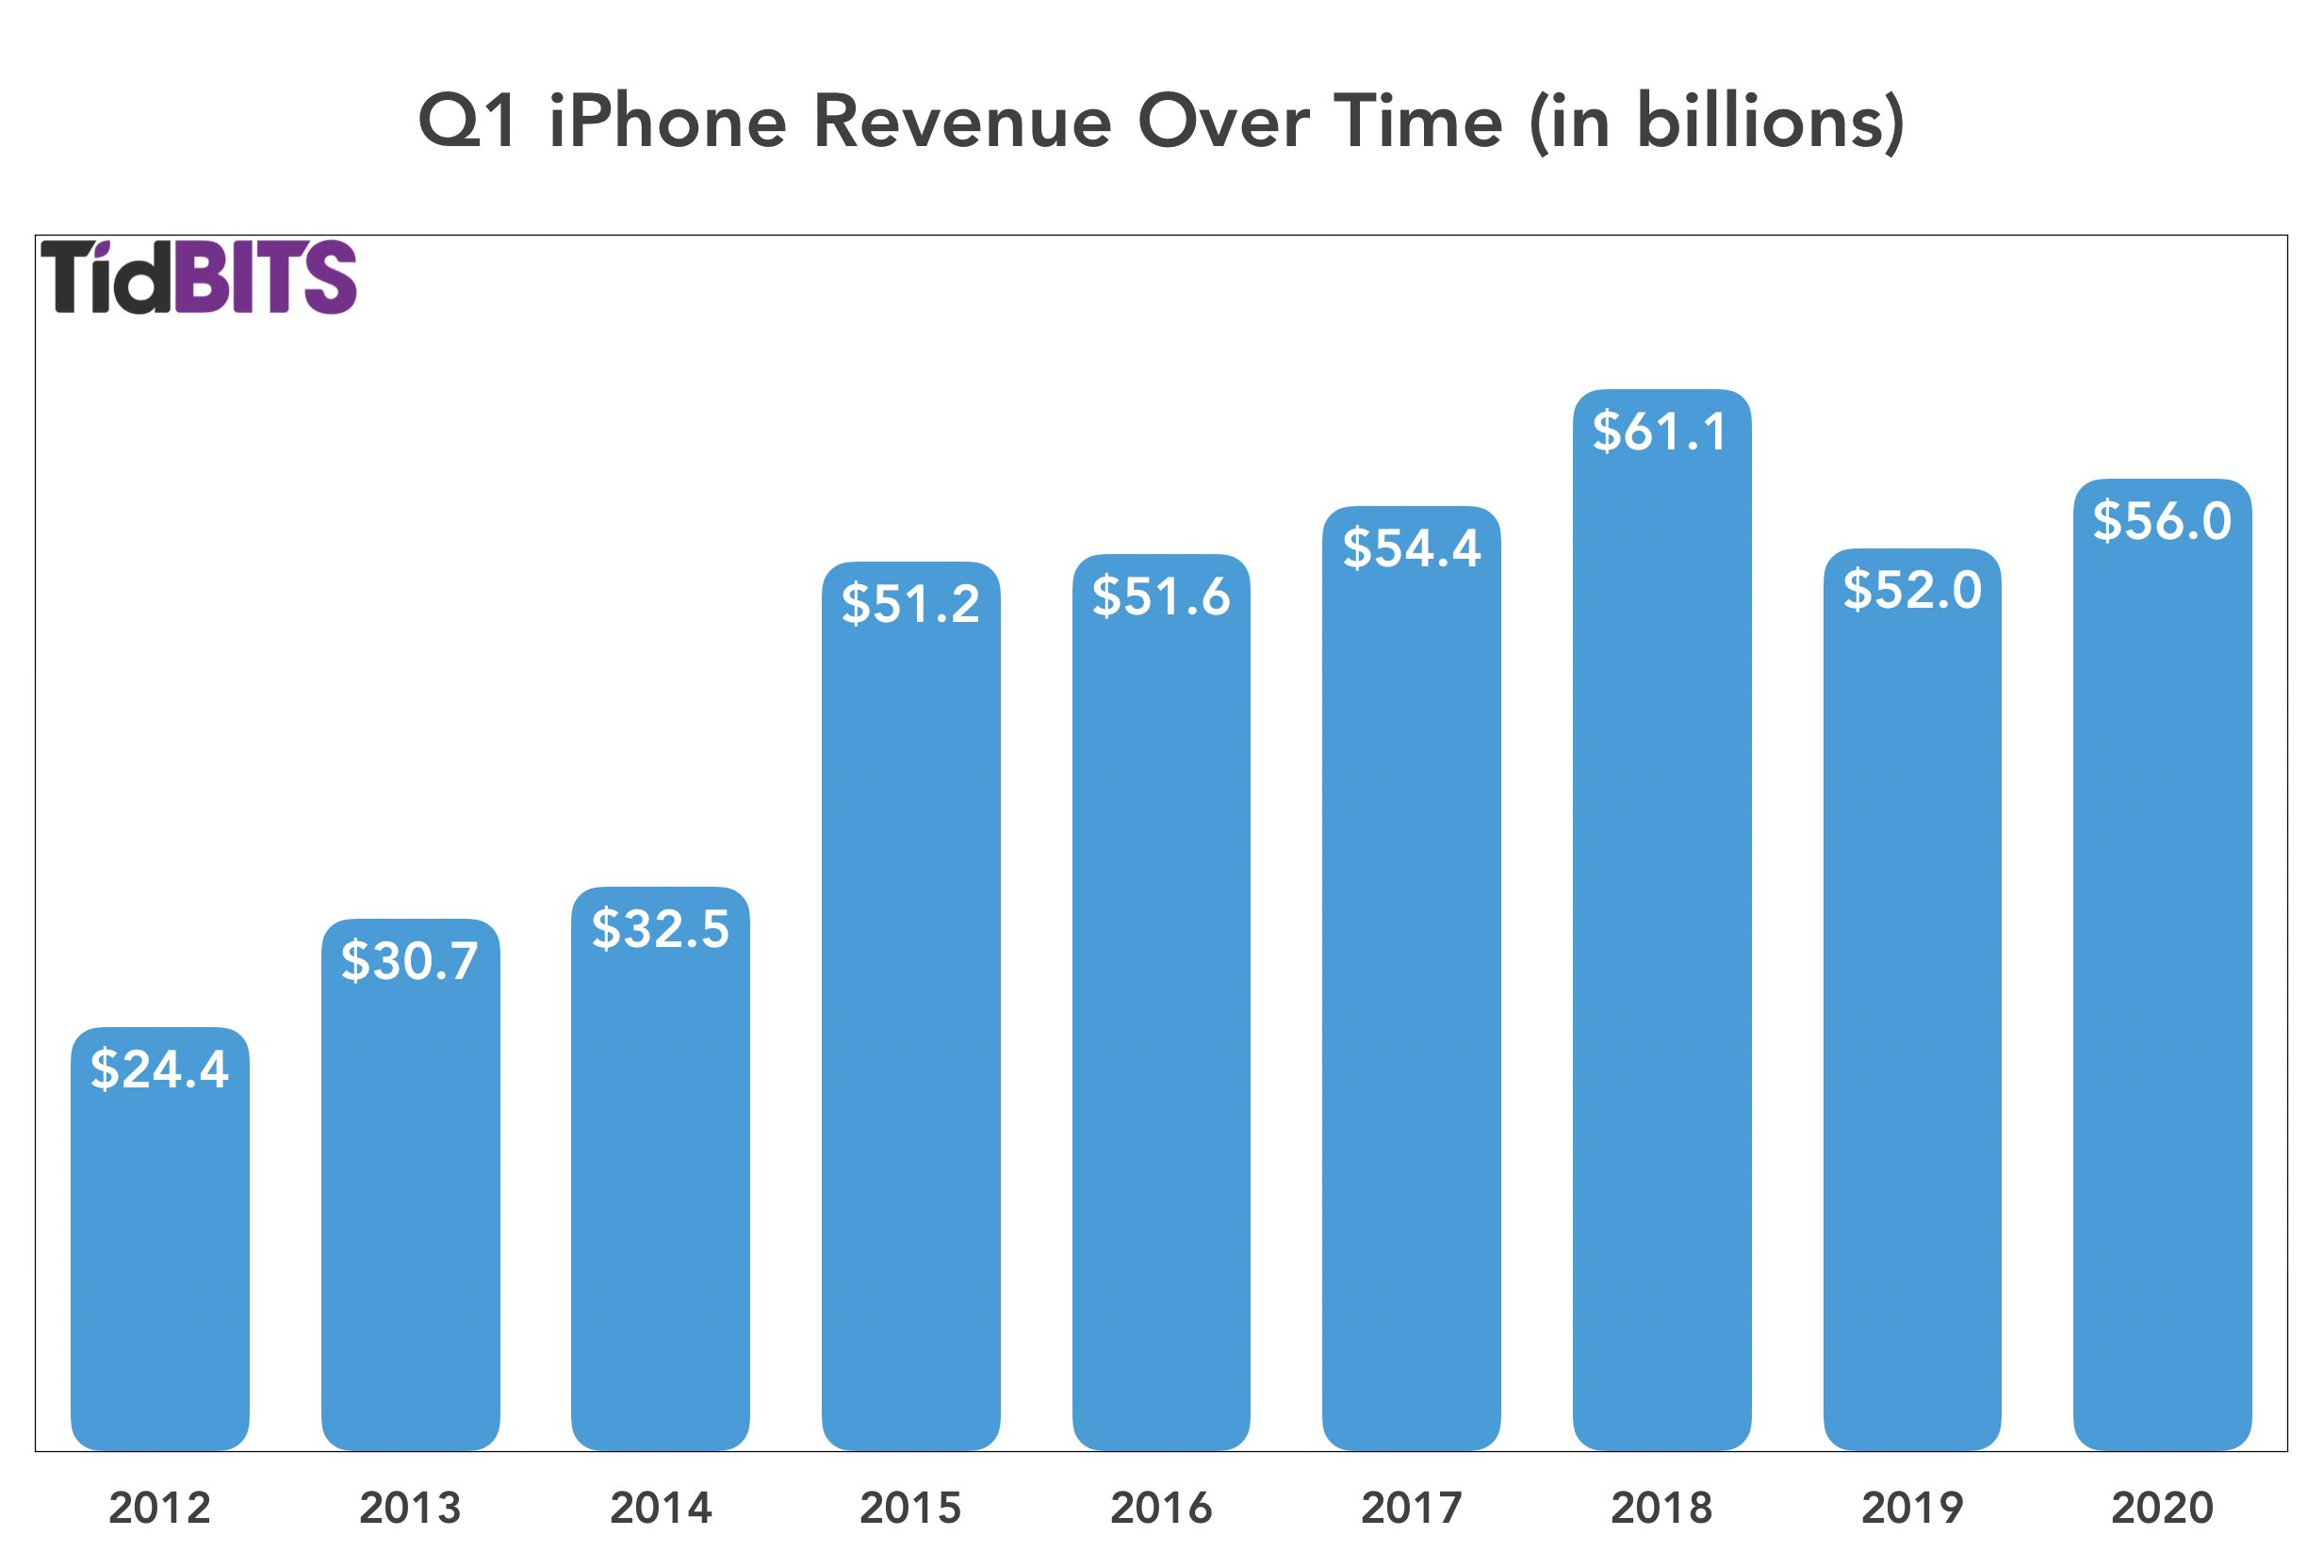 Q1 iPhone revenue over time